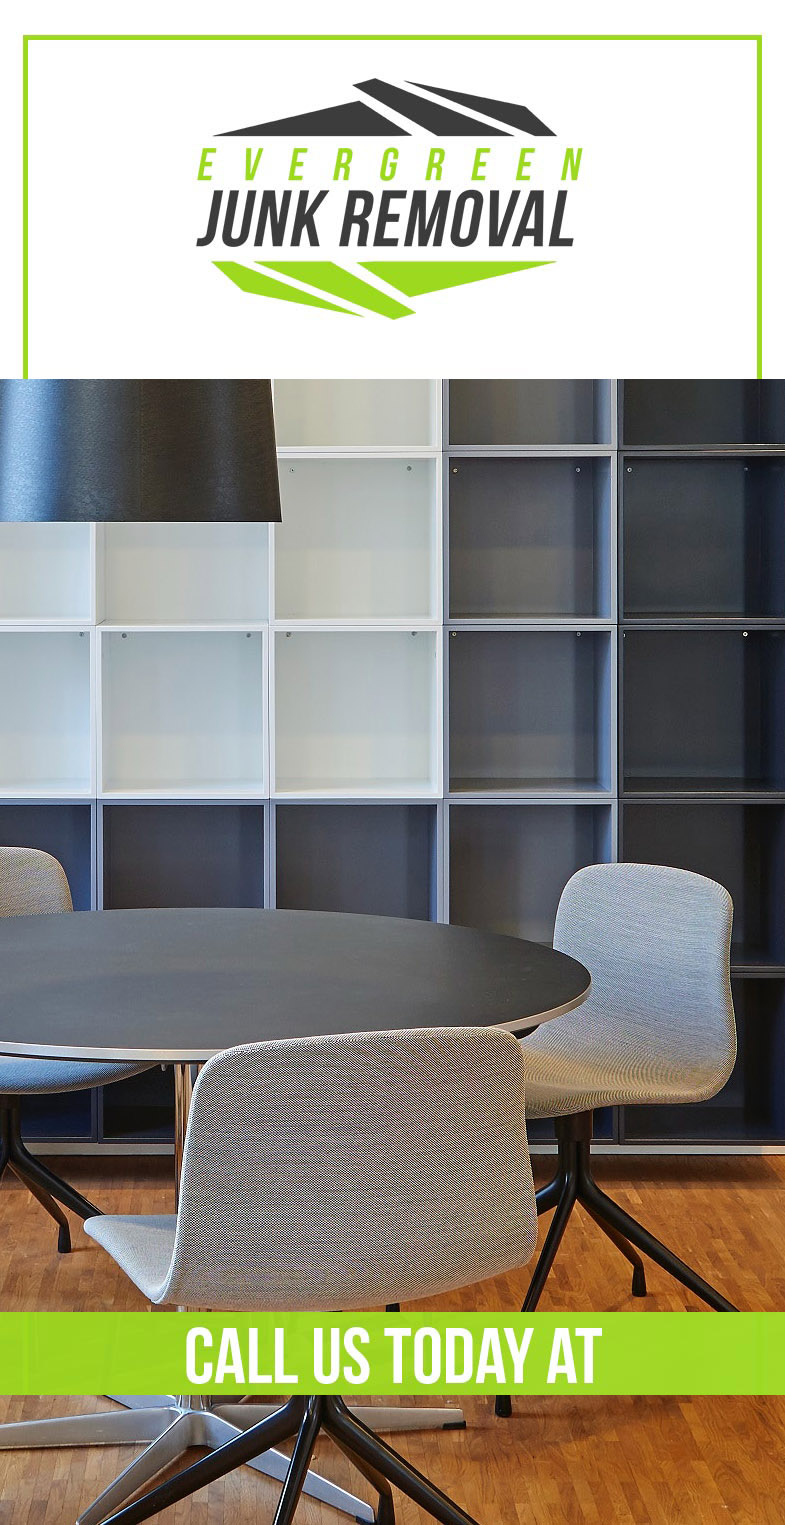 Office Cleaning Services Pompano Beach FL